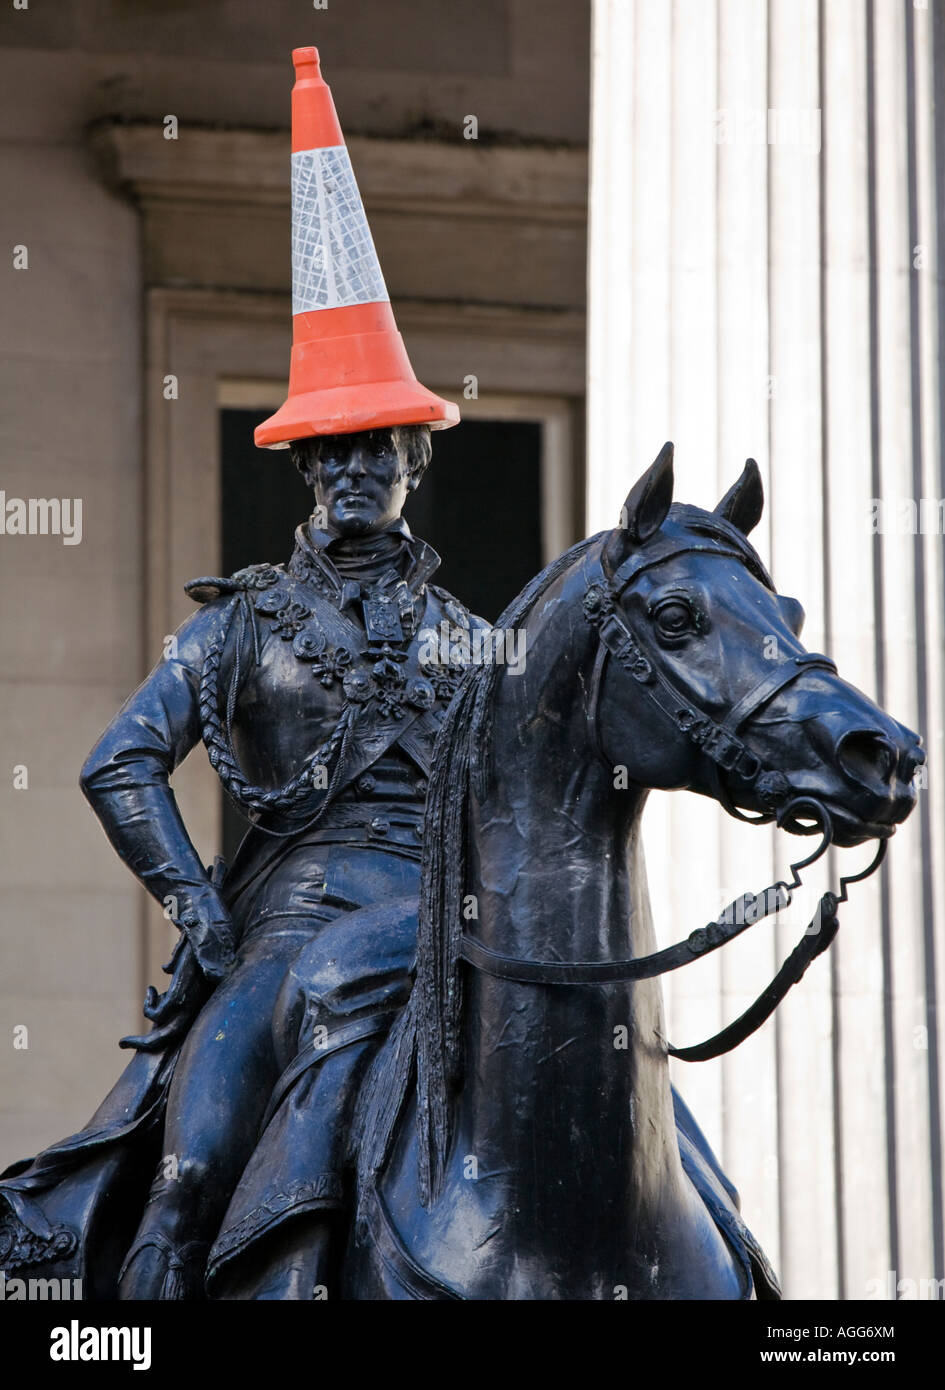 The Duke of Wellington on his horse wearing a traffic cone for a hat, Royal Exchange Square, Glasgow, Scotland. - Stock Image